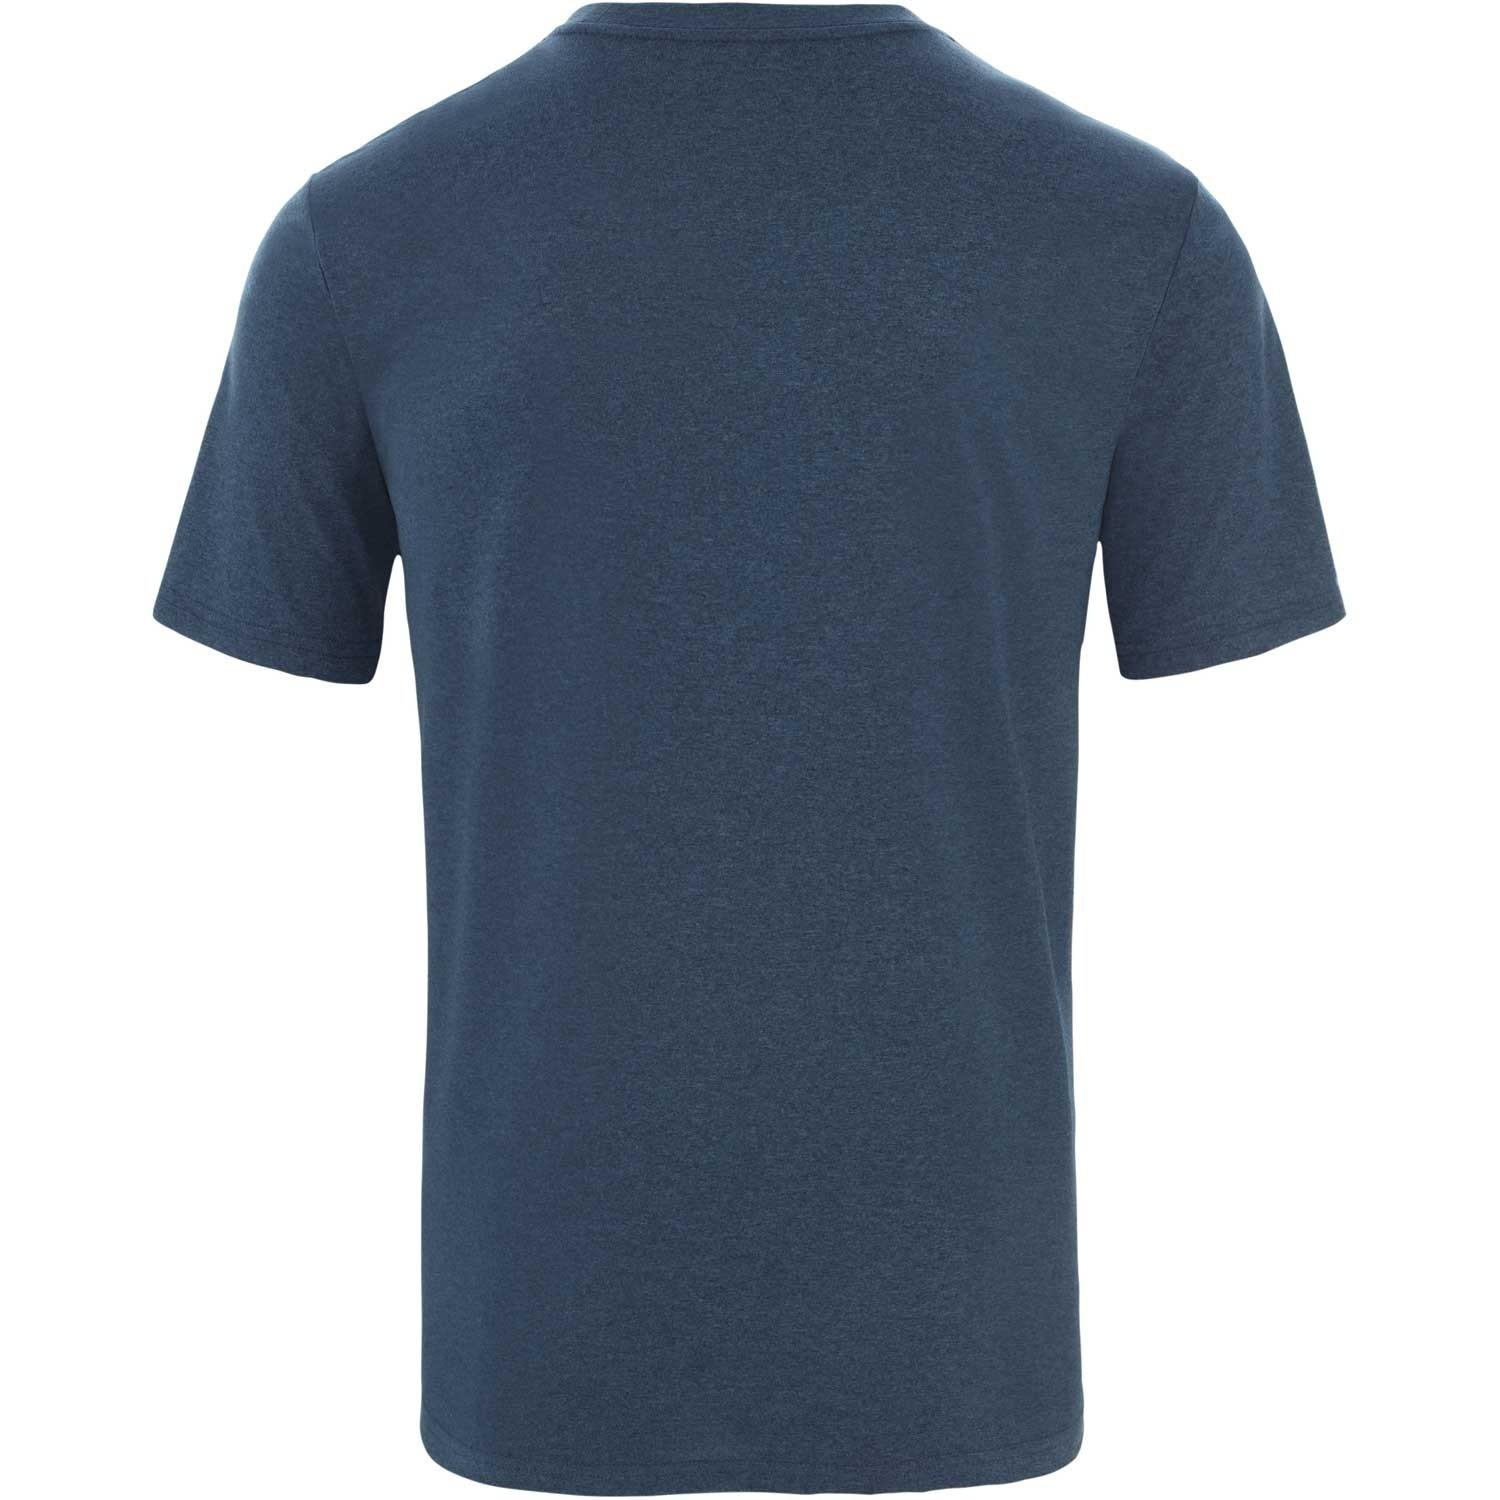 The North Face Reaxion Amp Crew - Men's - Blue Wing Teal